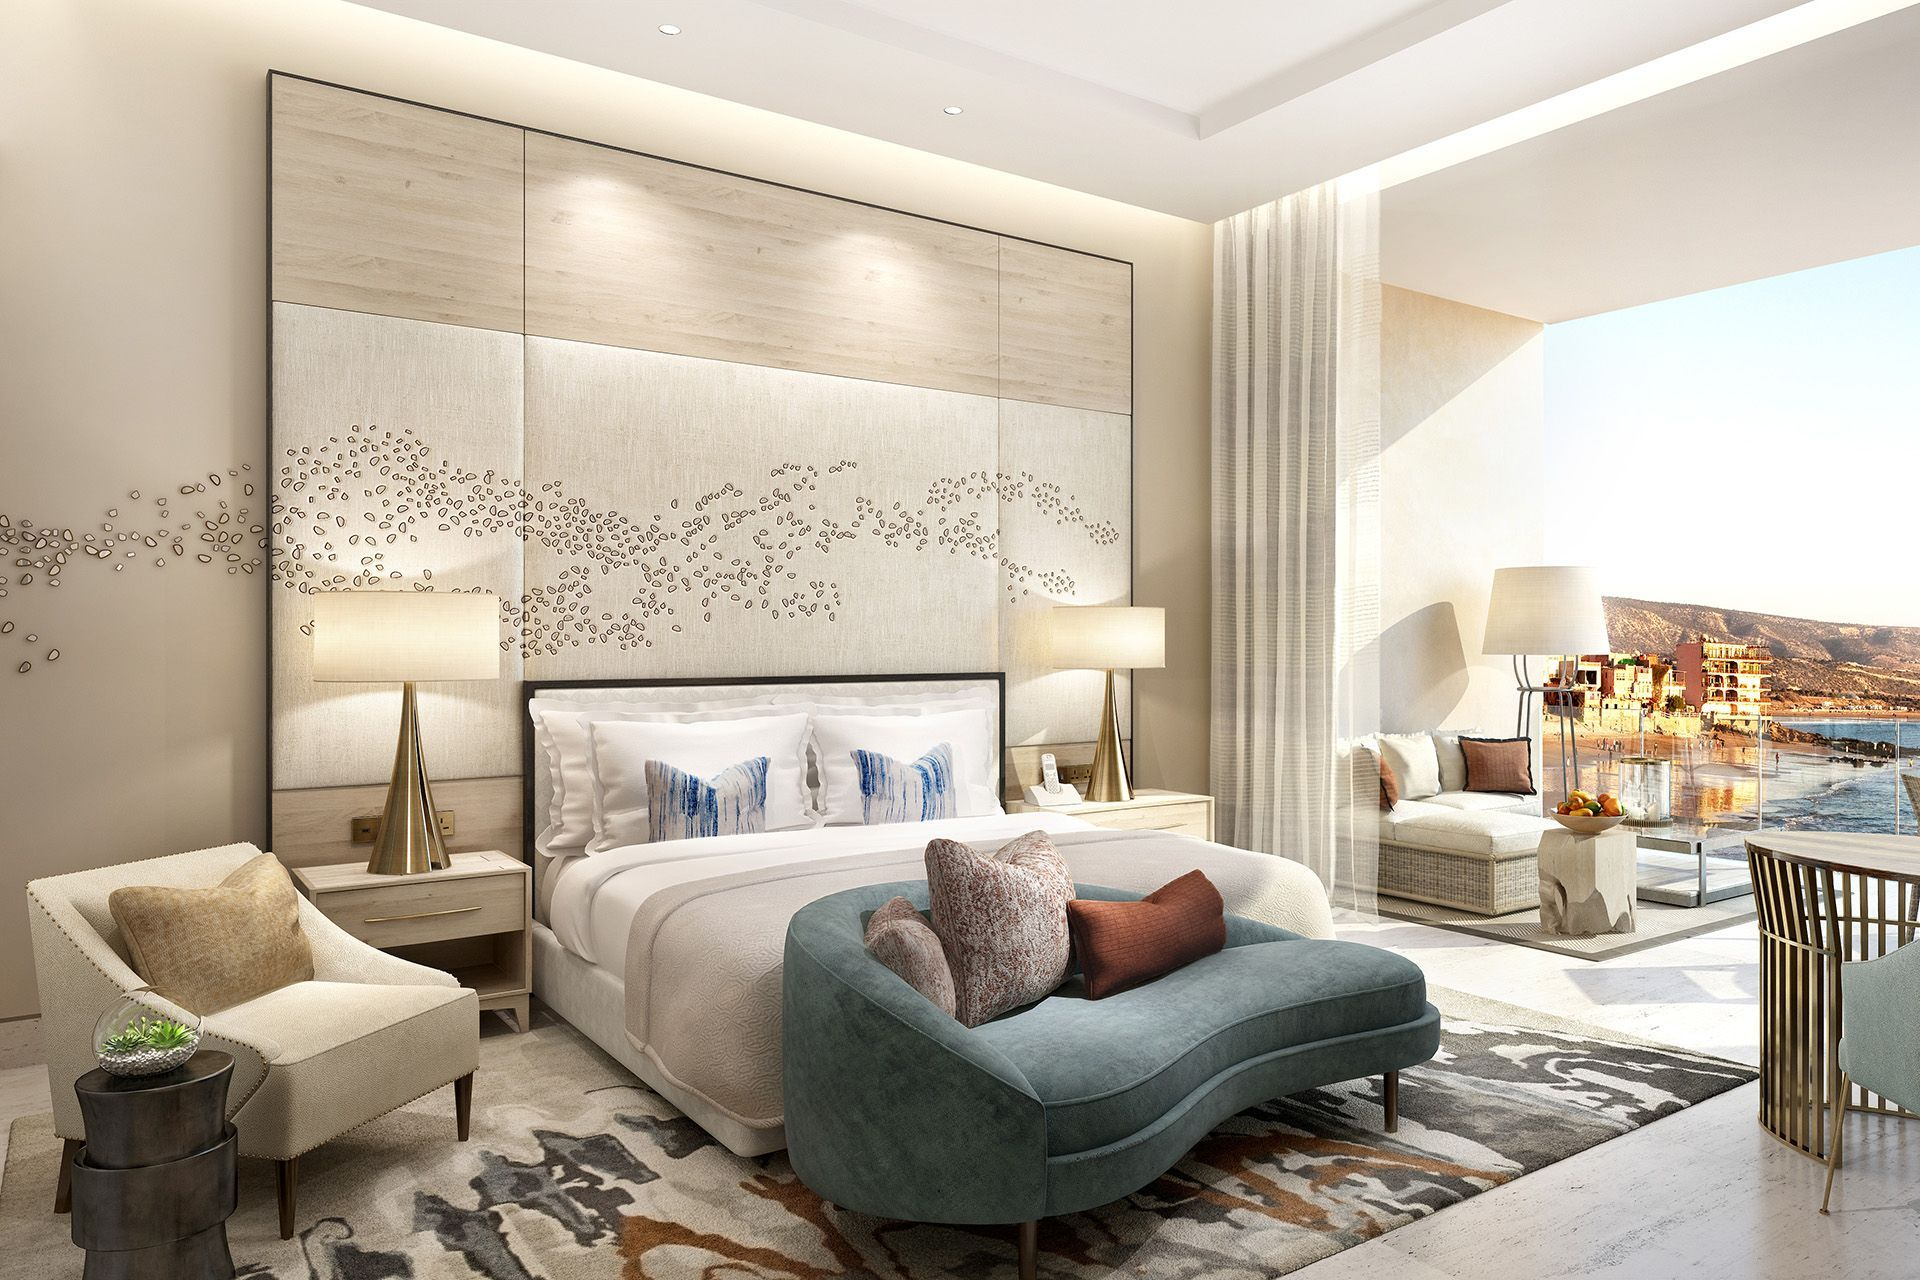 Four seasons taghazout interior designers wimberly for Bed interior design picture